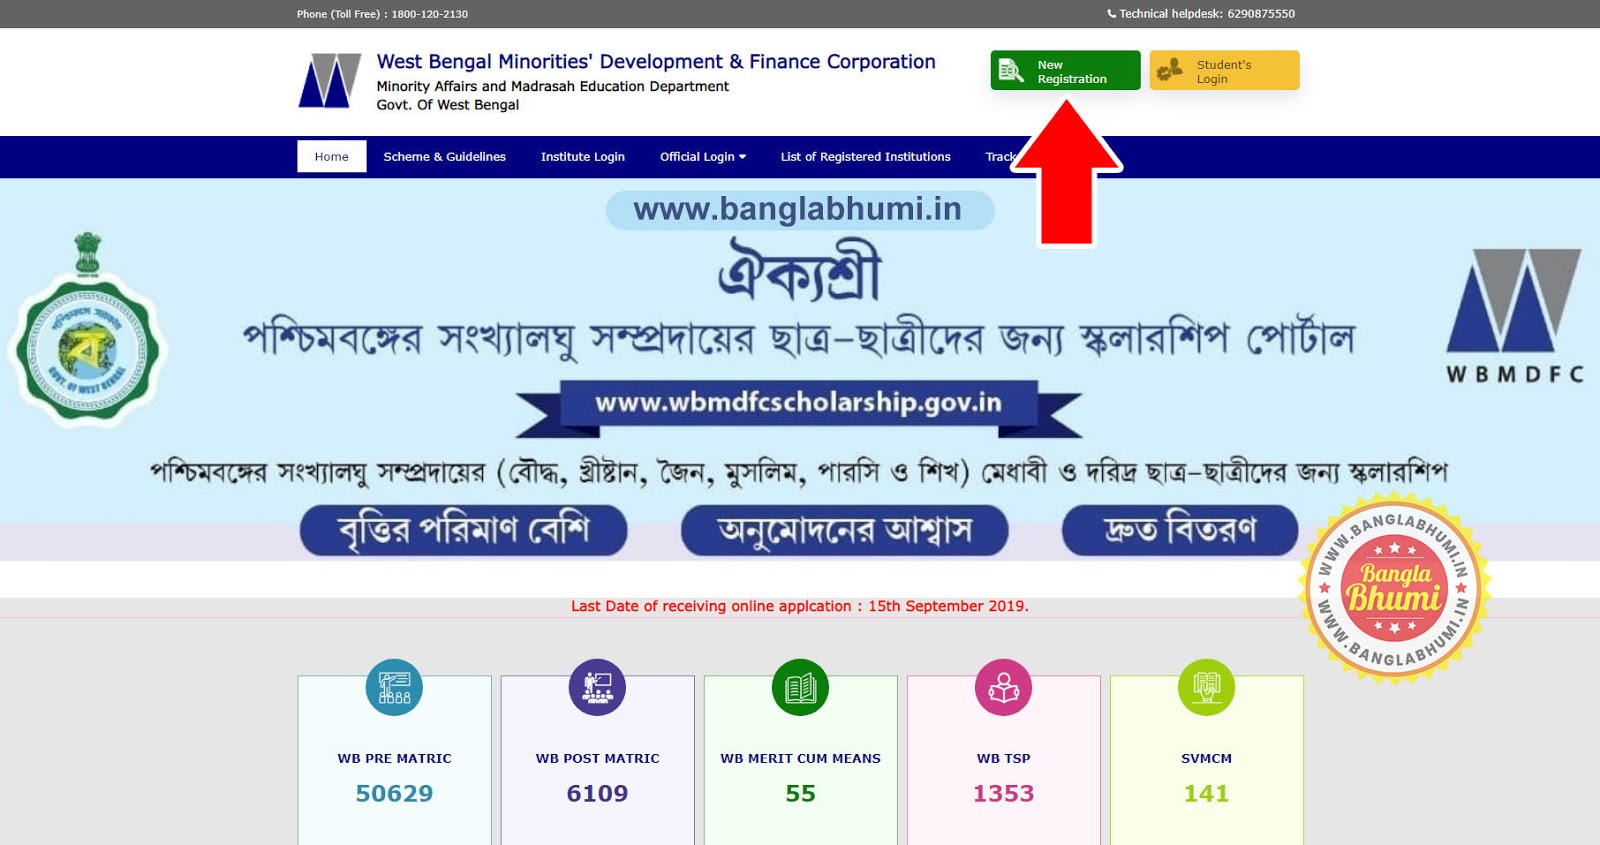 New Registration - Online Application Aikashree Scholarship West Bengal